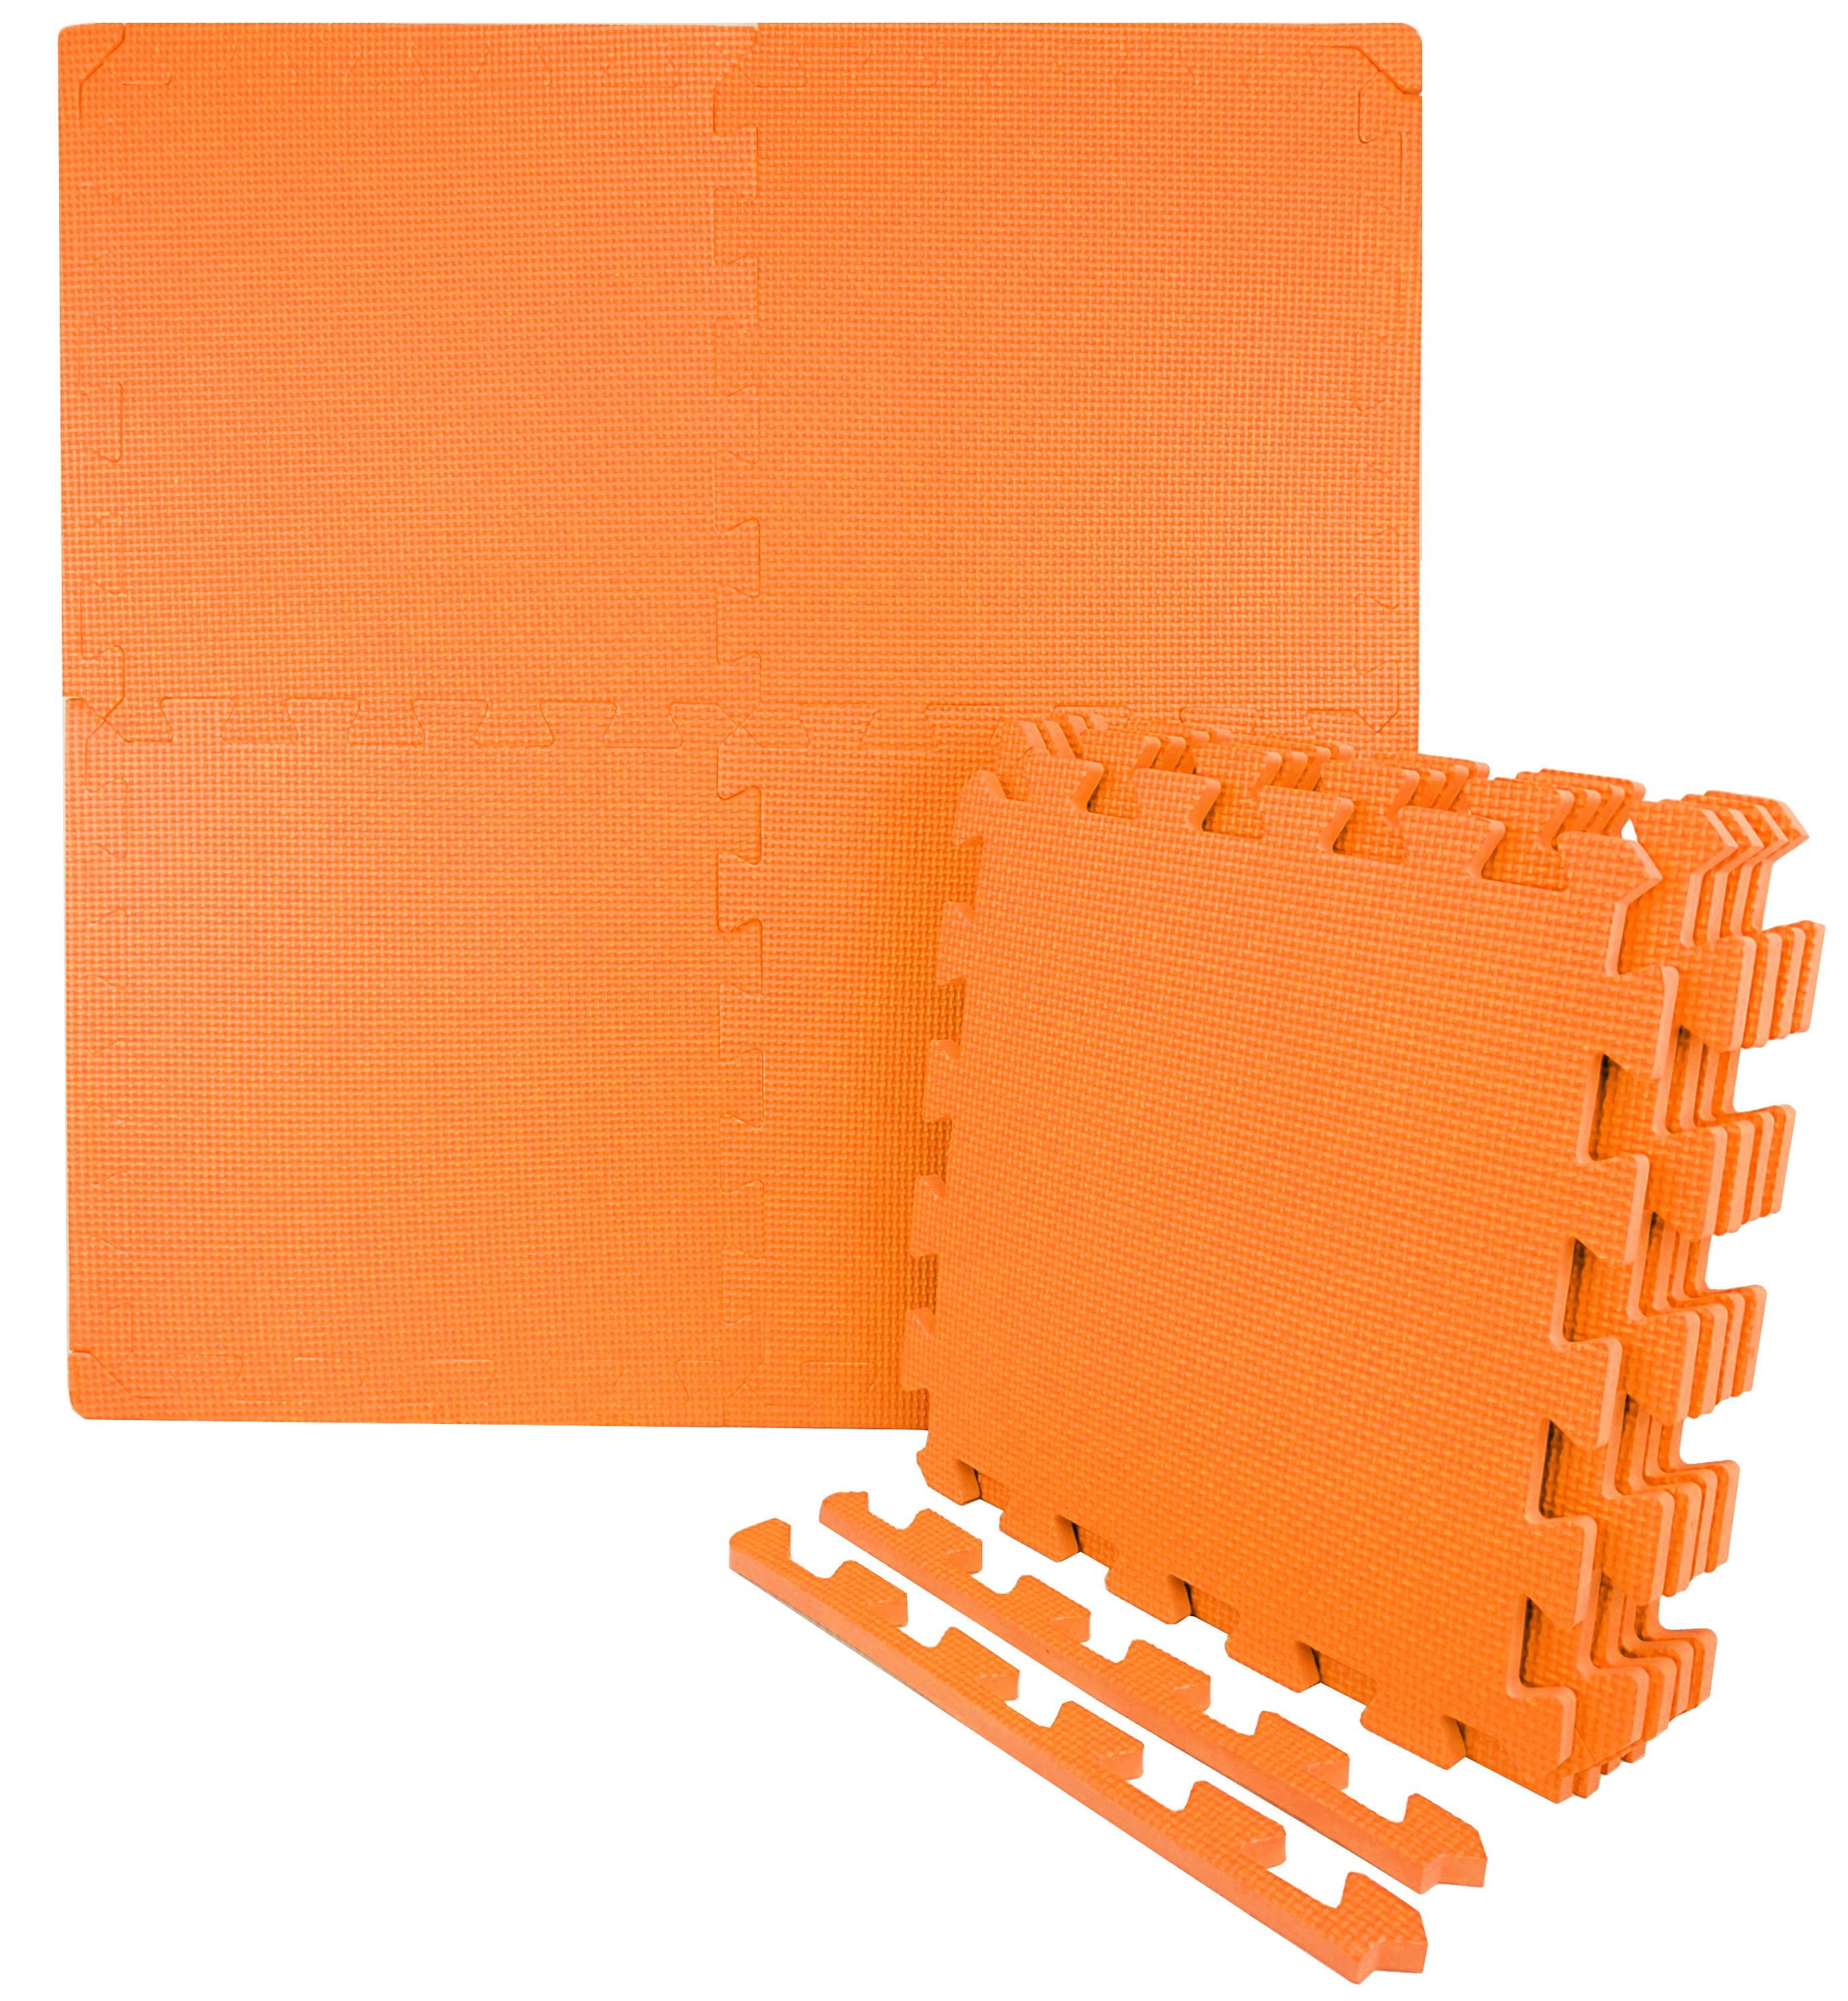 Wacces 12 x 12 inch Multi-Purpose Puzzle EVA Floor Interlocking Foam Exercise Mat Tiles - Multi-Color